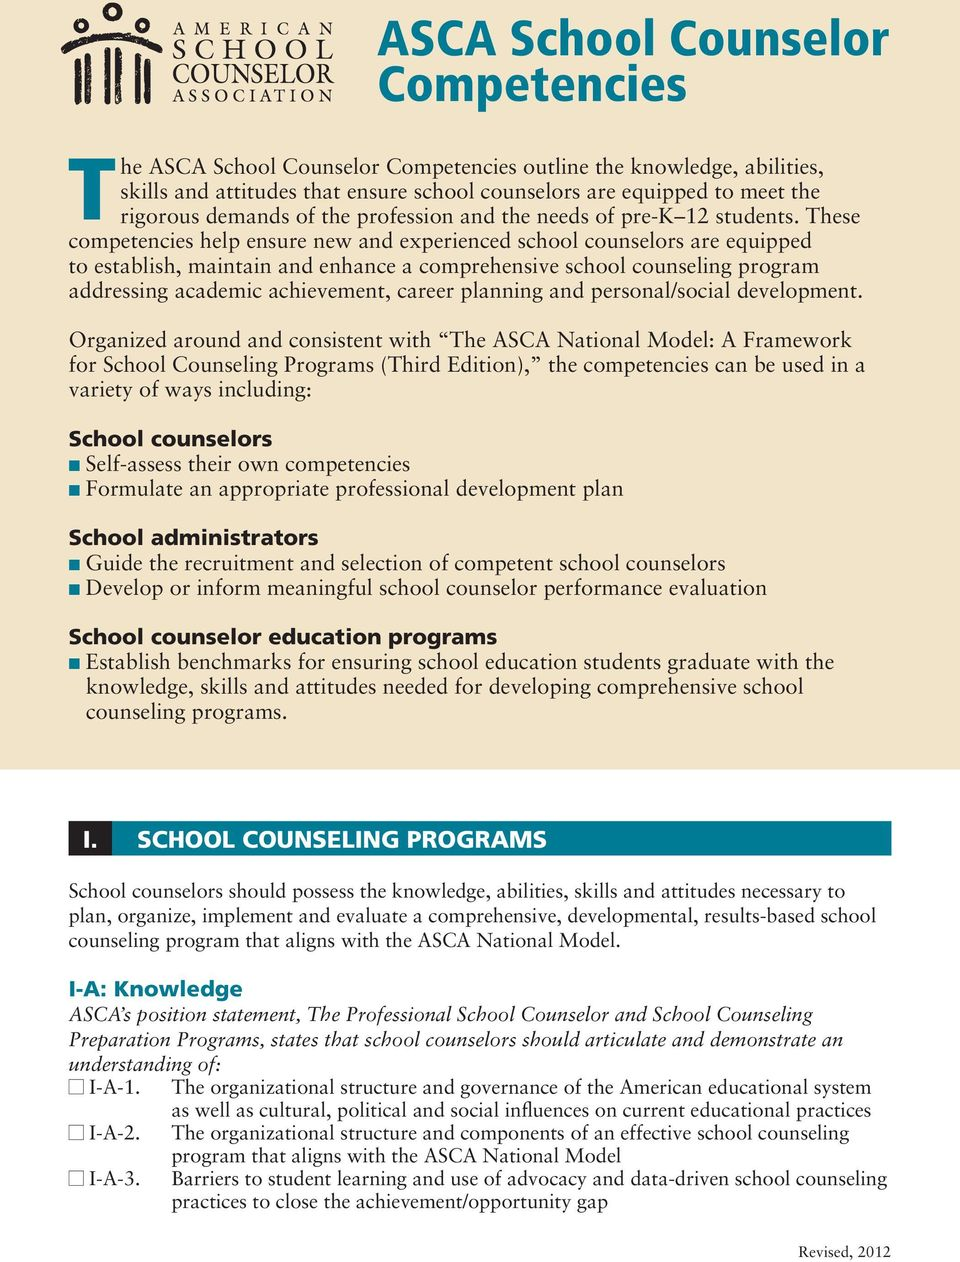 These competencies help ensure new and experienced school counselors are equipped to establish, maintain and enhance a comprehensive school counseling program addressing academic achievement, career